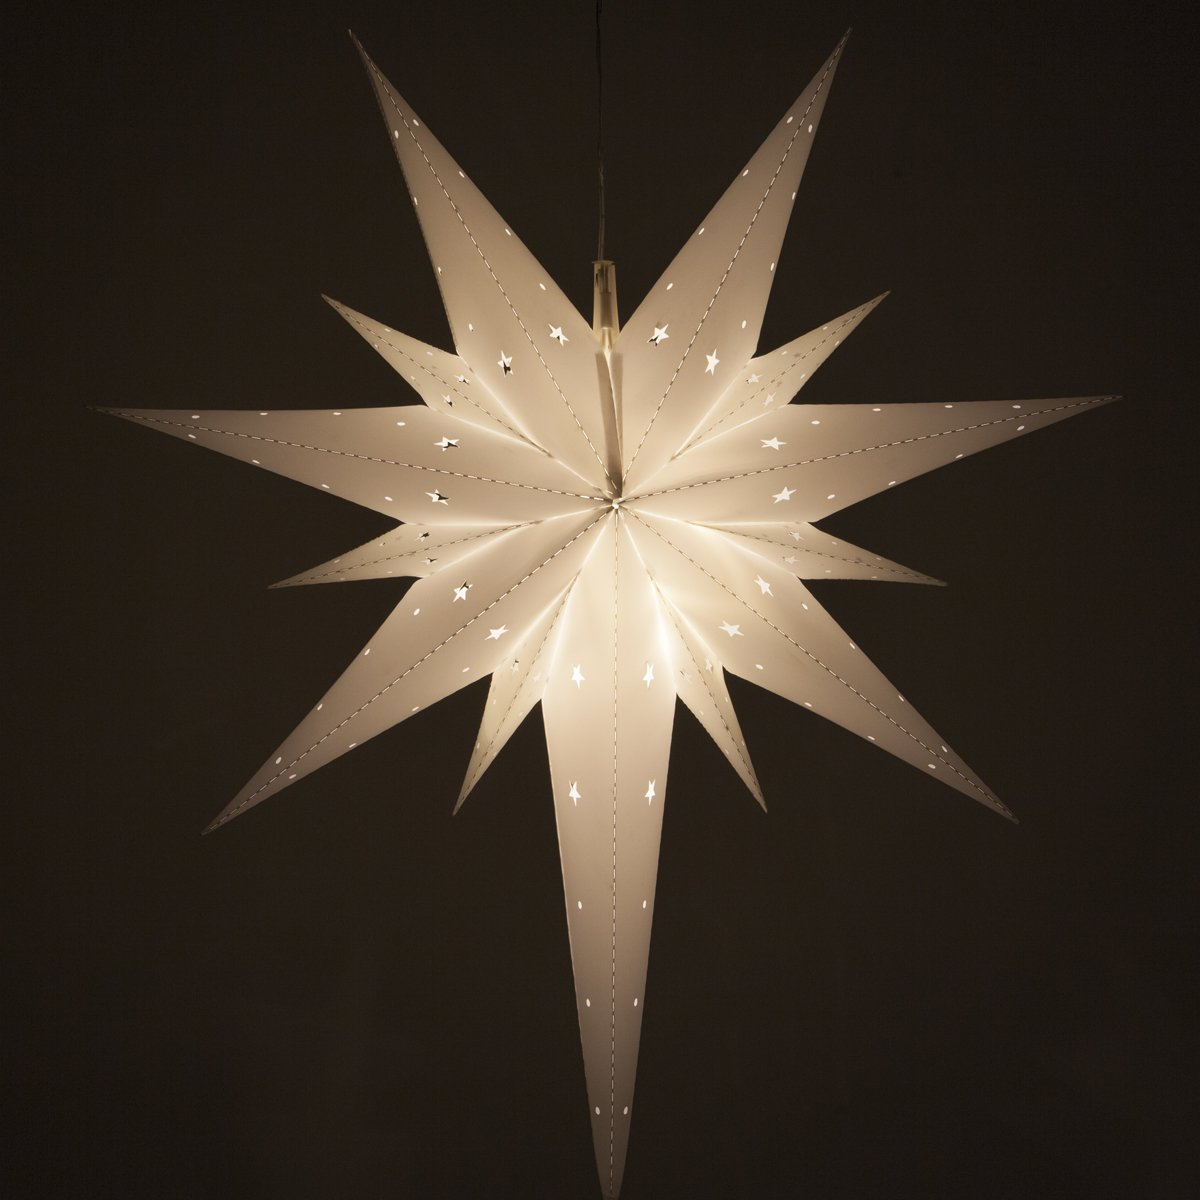 Wintergreen Lighting Fold-Flat Bethlehem Star Light – LED Star Christmas Decoration, Battery-Powered with Timer, (26'', White)